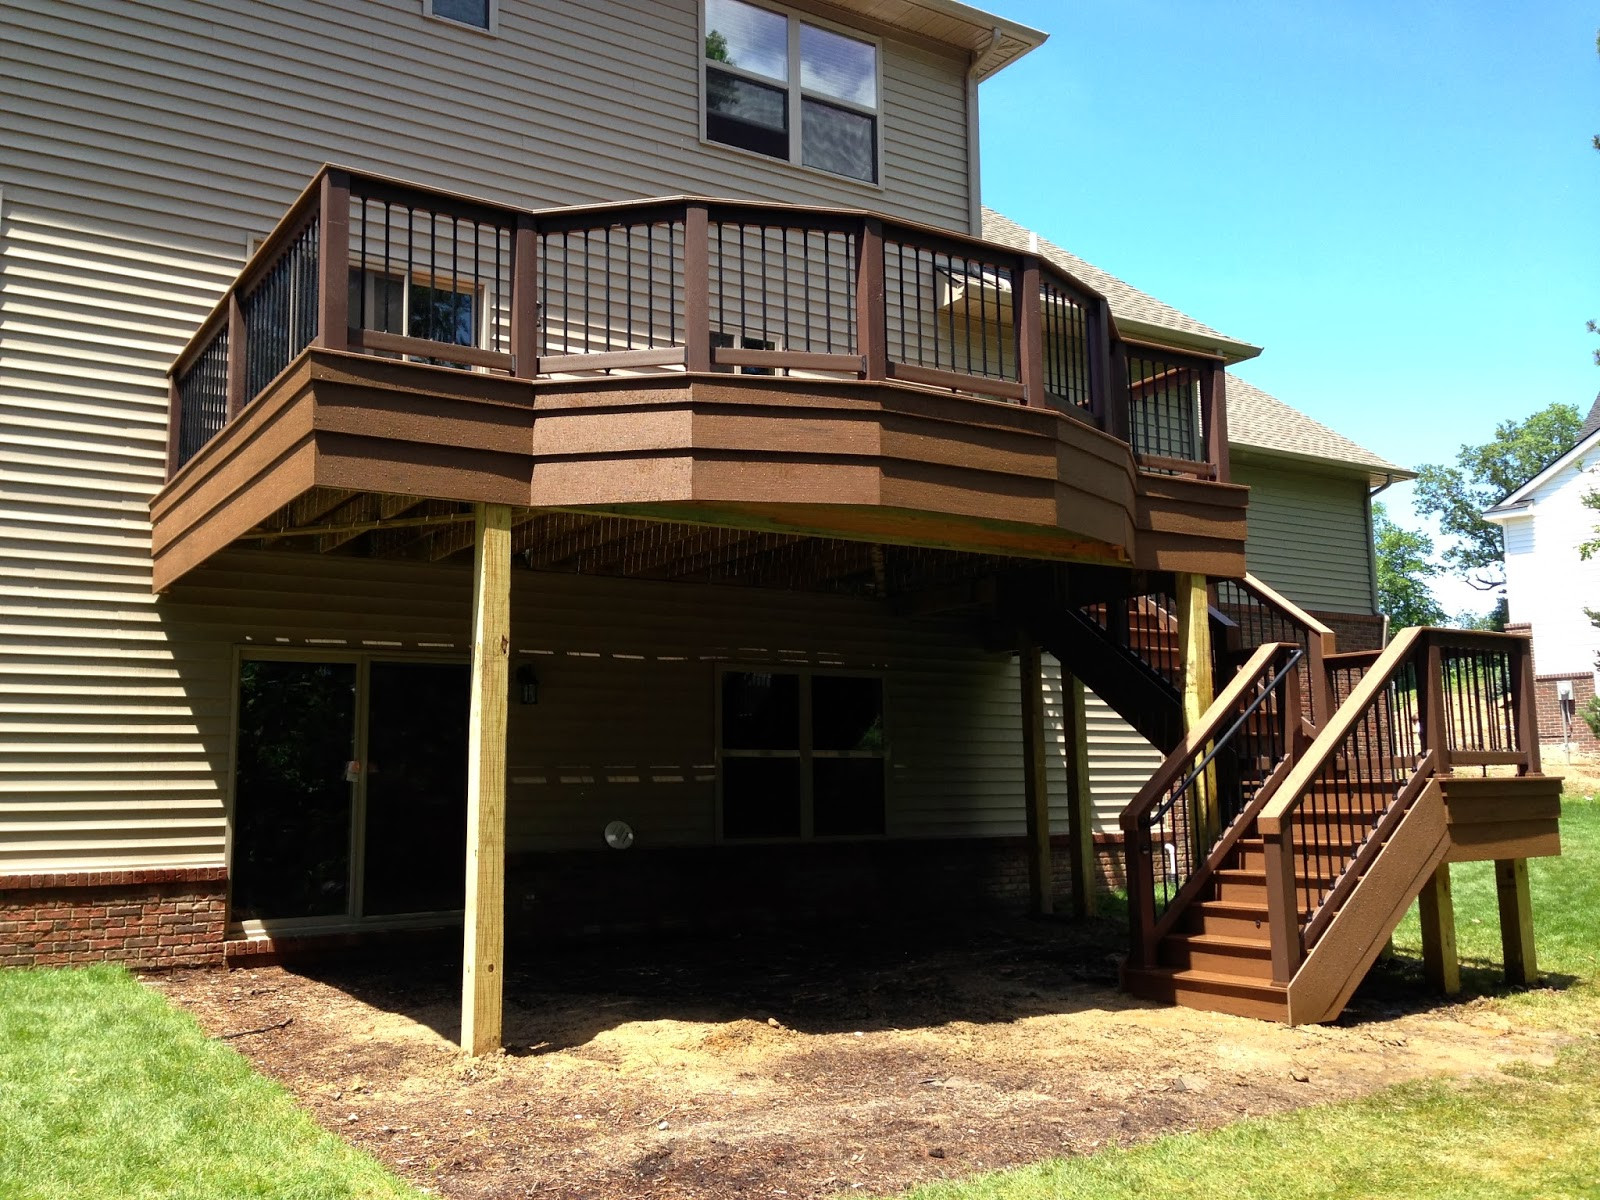 Backyard Deck Plans  Outdoor Living Deck designs from 2013 Adding flair to a